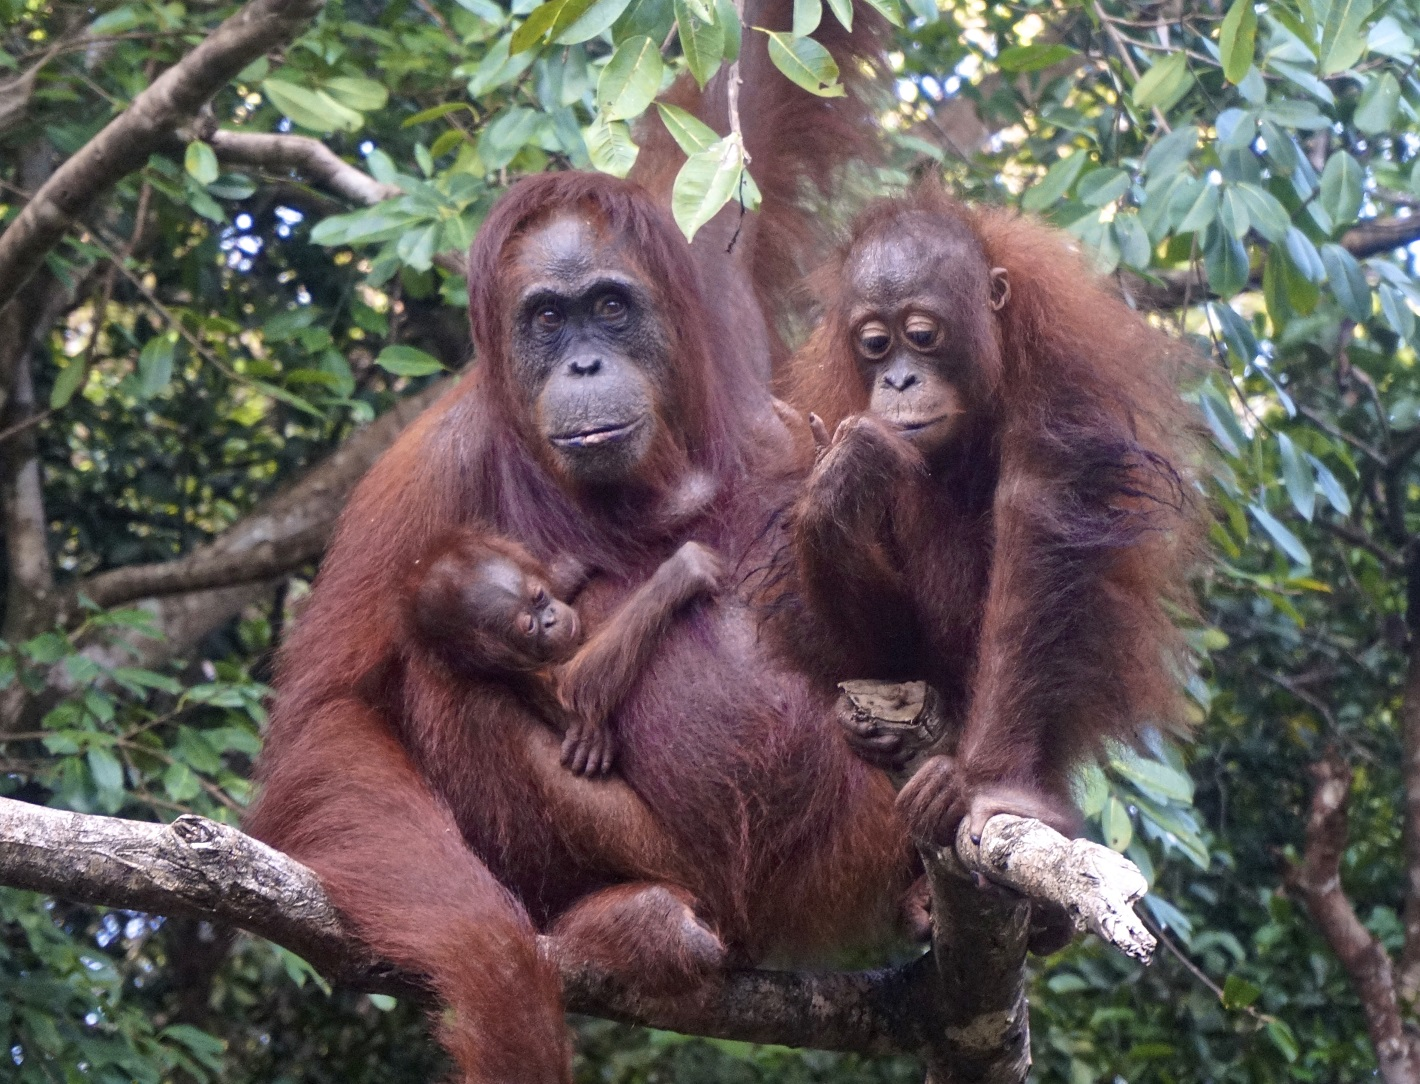 Paula with infant Paul and Rawit, 2017. Image© Orangutan Foundation.